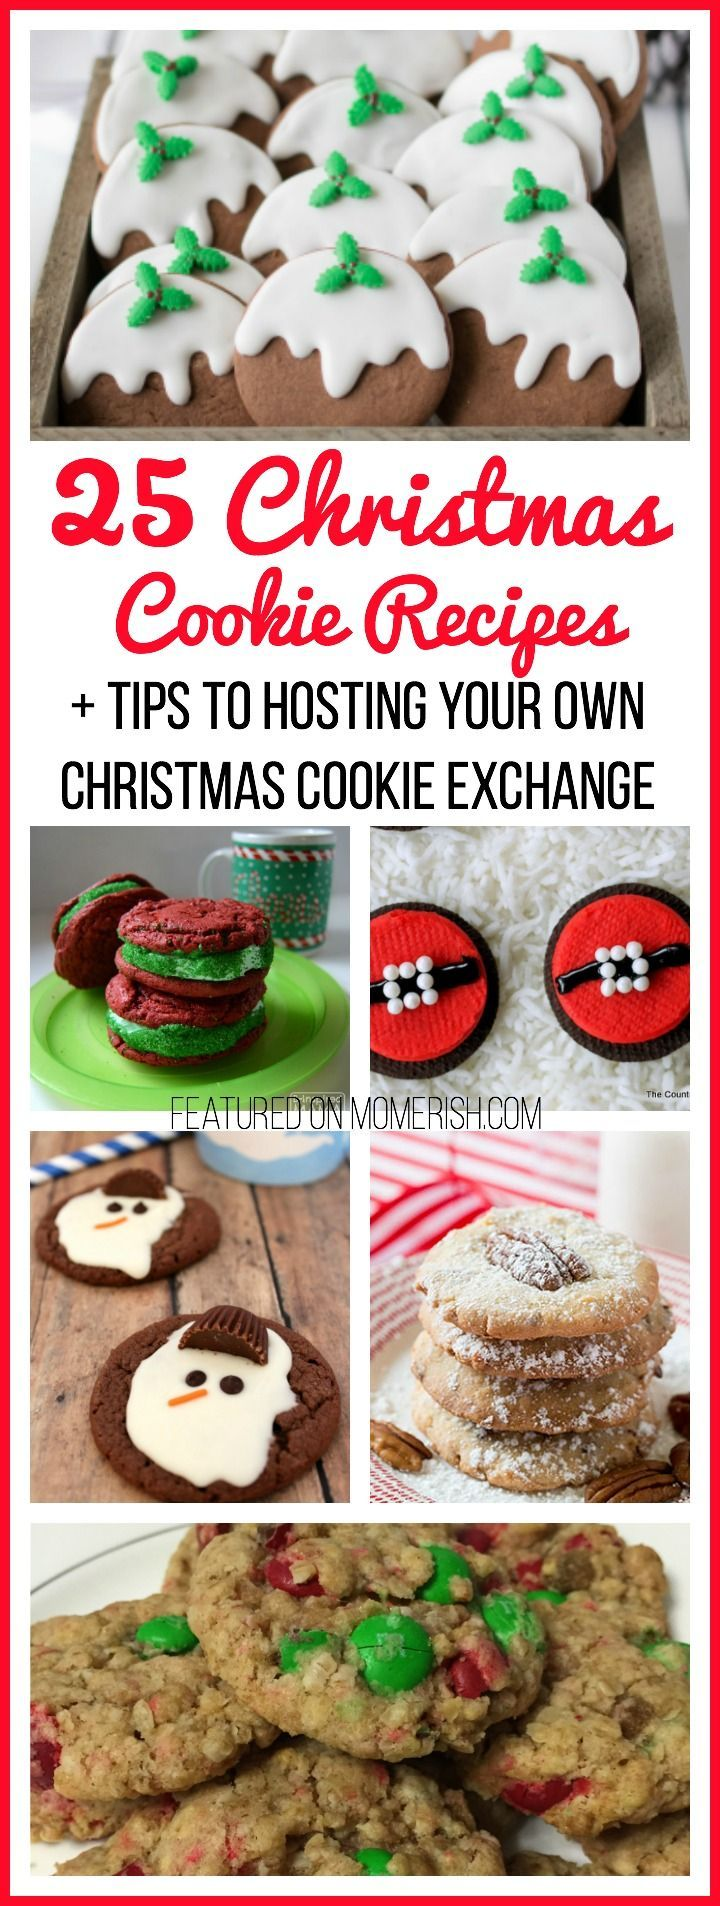 If You Are Looking For Christmas Cookie Recipes These 25 Ideas Should Hit The Spot Plus Find O Cookies Recipes Christmas Christmas Cookies Christmas Cooking